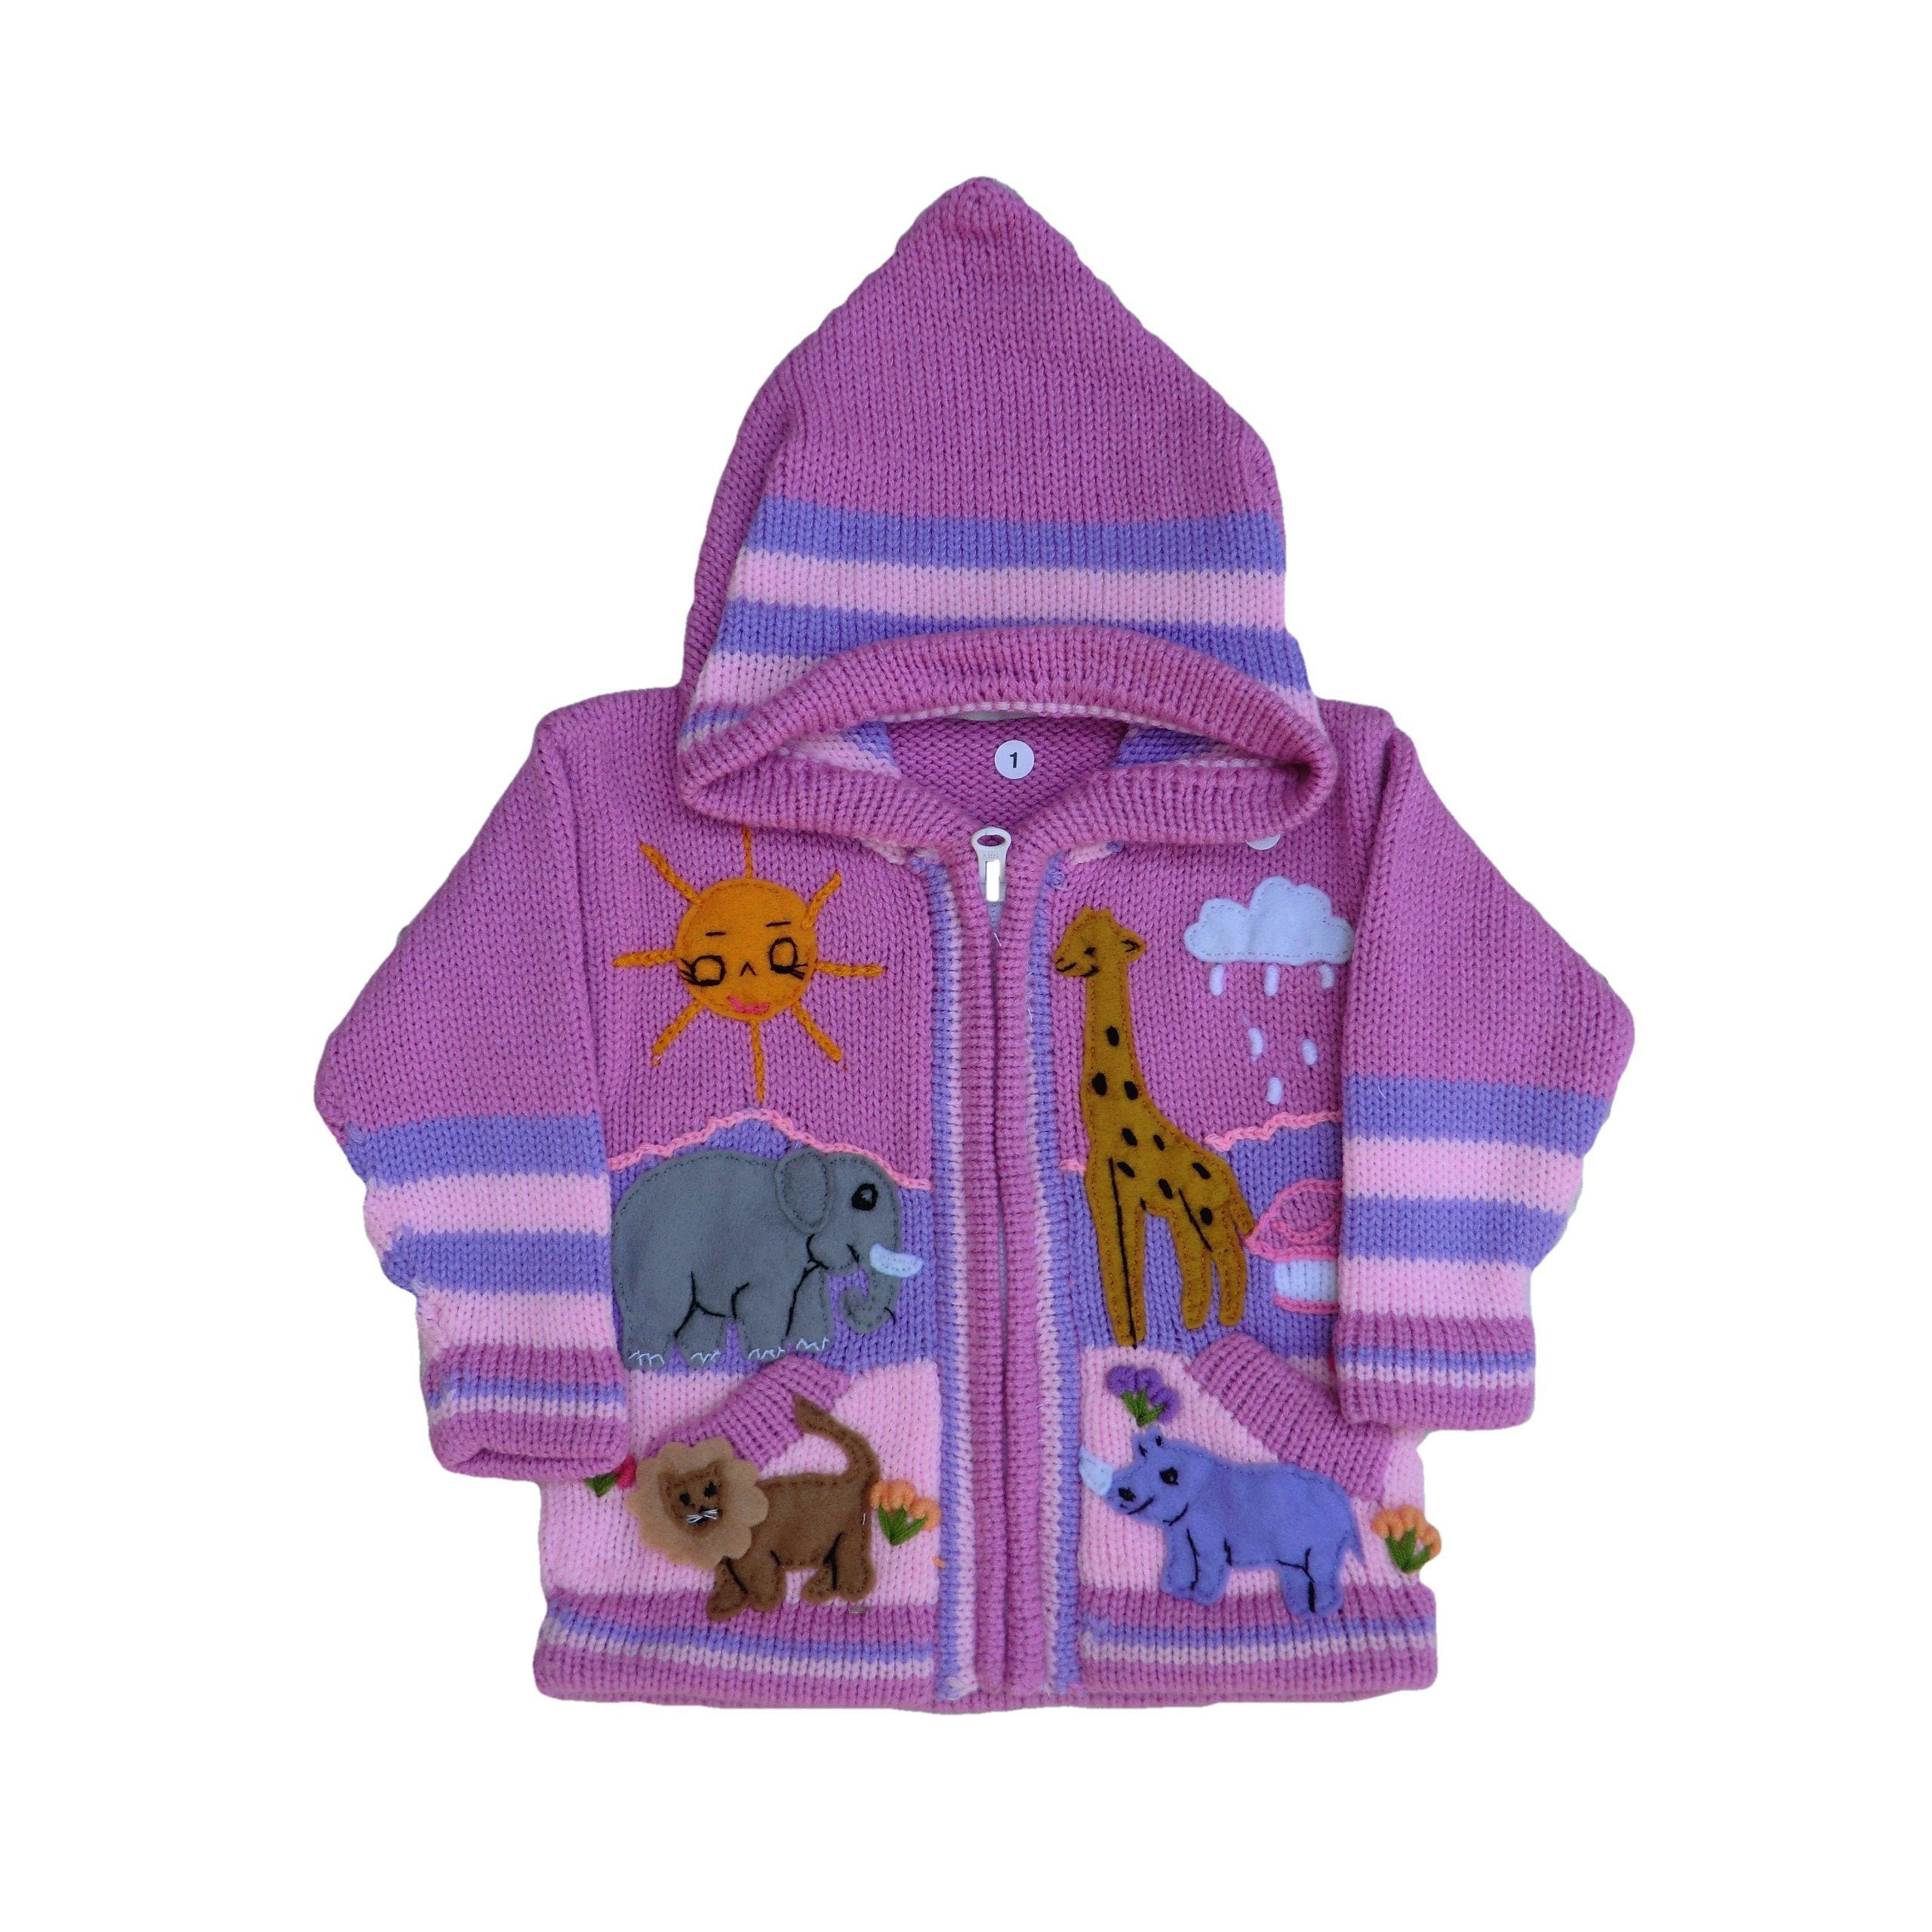 Children's Pink Cardigan - Safari - Matico